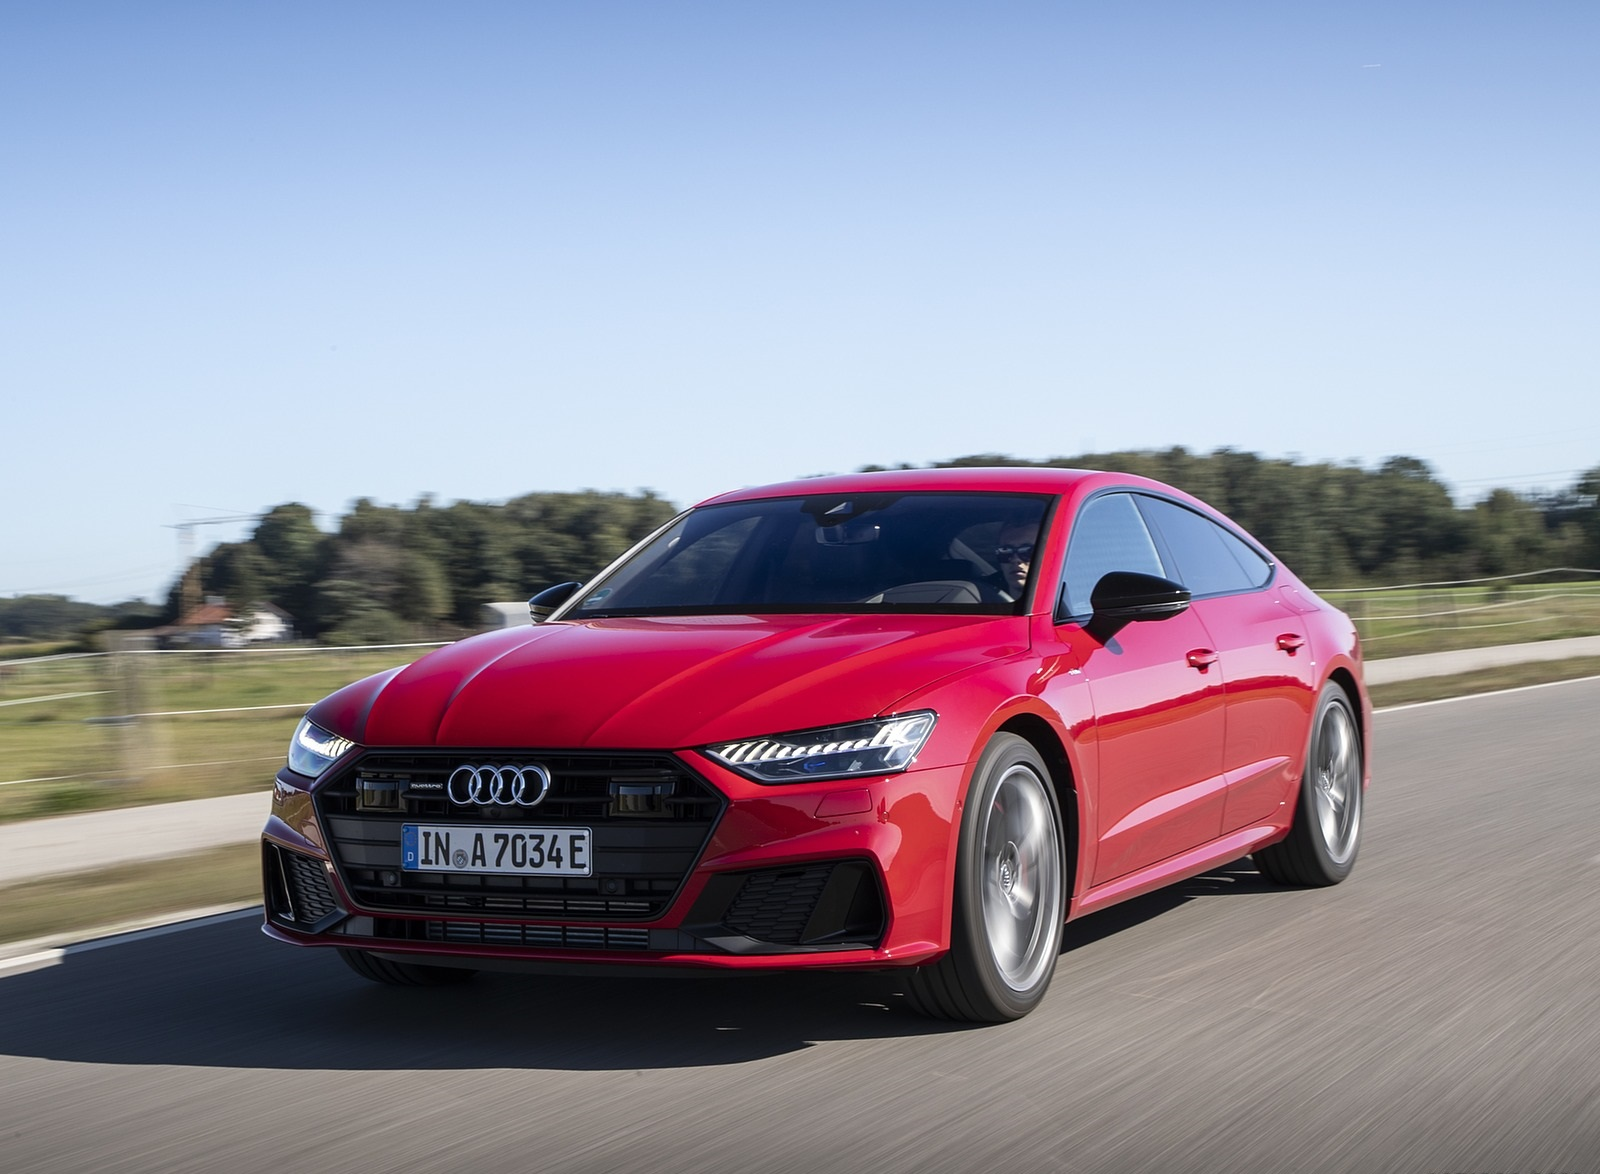 2020 Audi A7 Sportback 55 TFSI e quattro Plug-In Hybrid (Color: Tango Red) Front Three-Quarter Wallpapers (4)